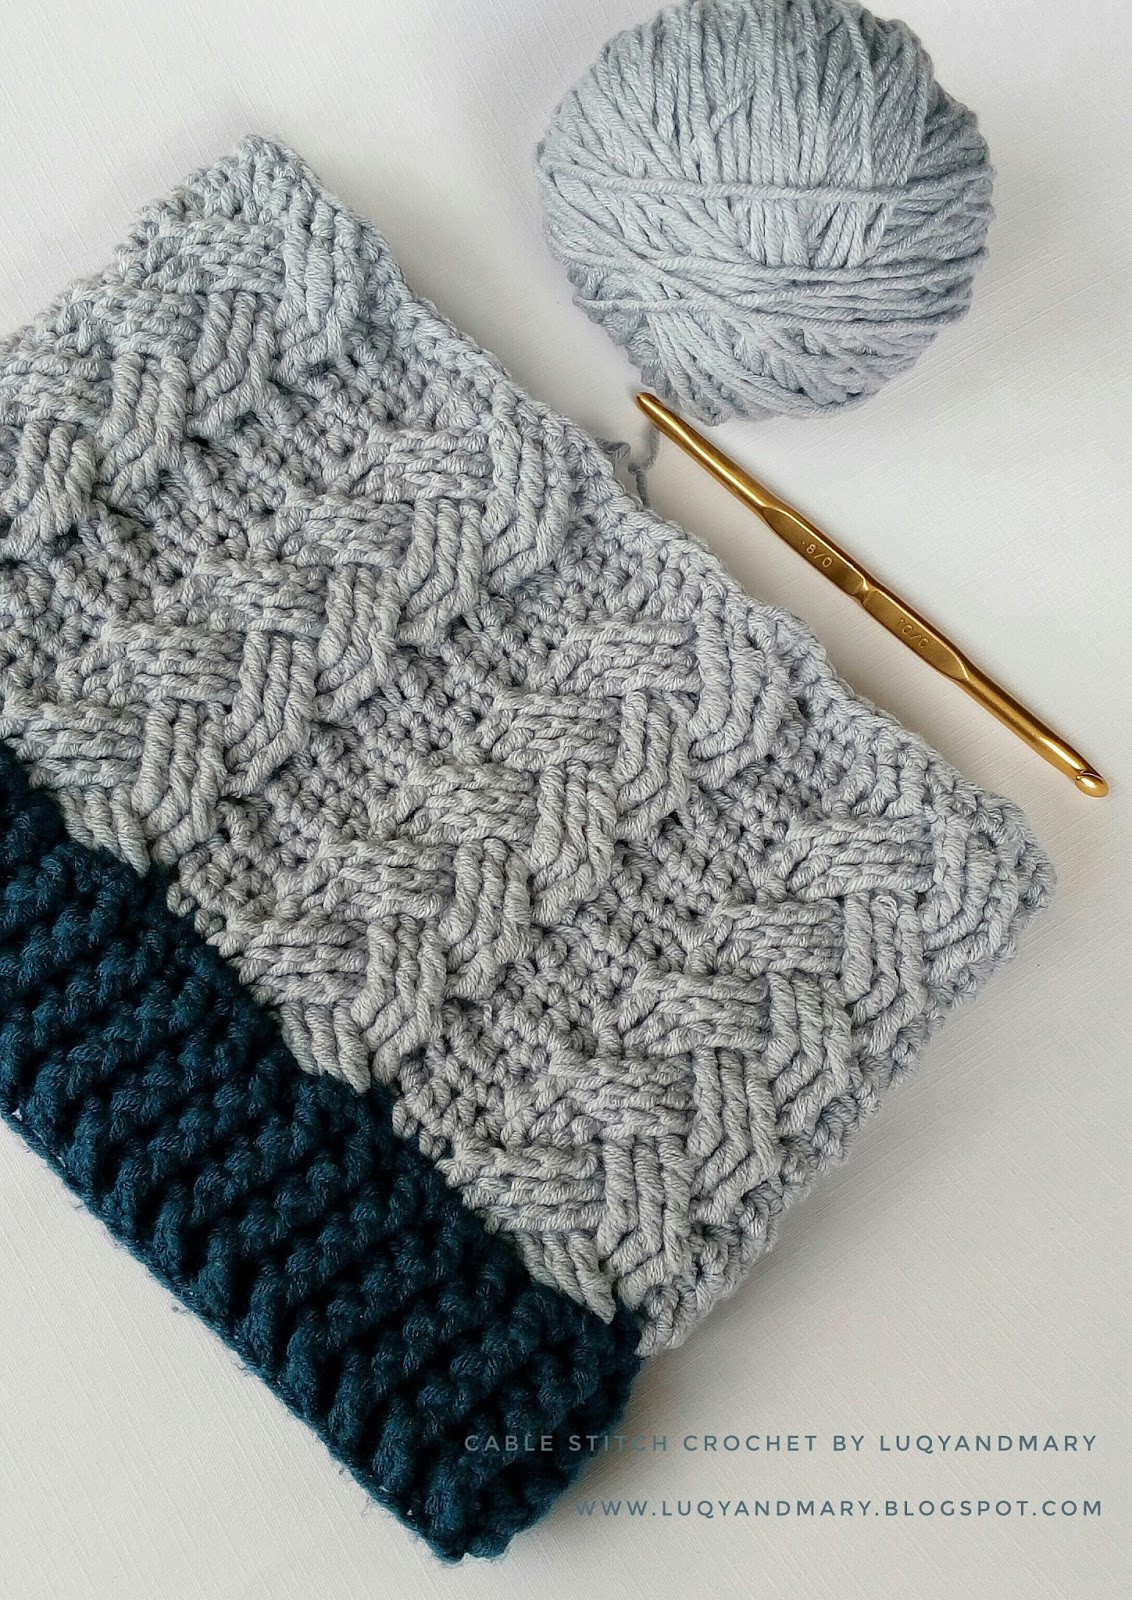 Luqy and Mary YarnWorks Crochet Cable Beanie Written Pattern